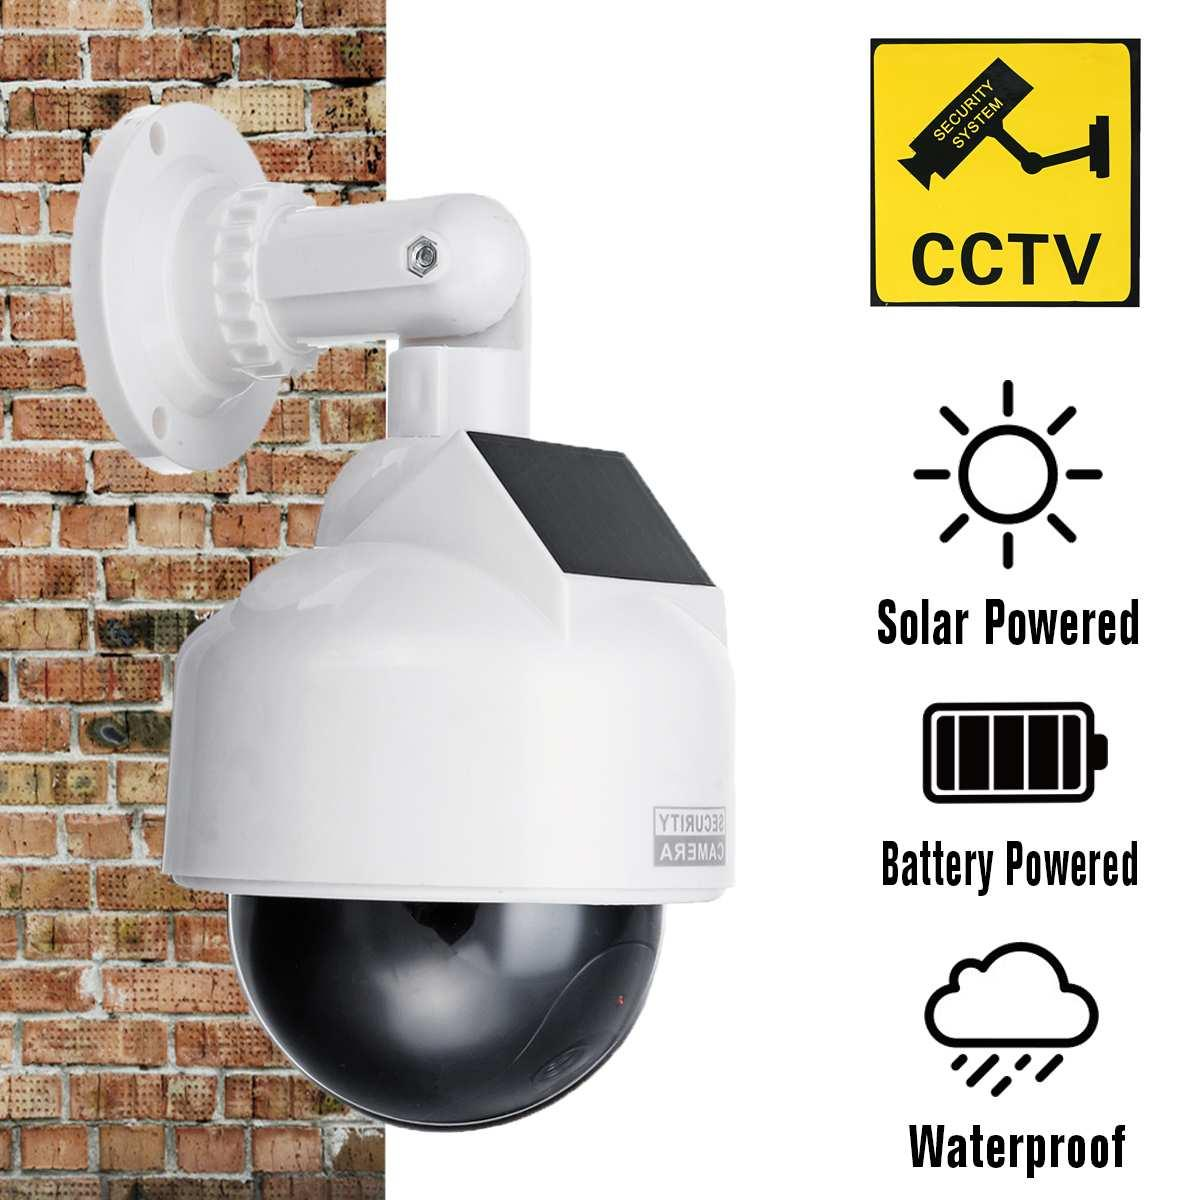 Wholesale Dummy Waterproof Security Camera Solar Power Outdoor Simulation Dummy Camera Waterproof Security CCTV Dummy Surveillance Camera Sy